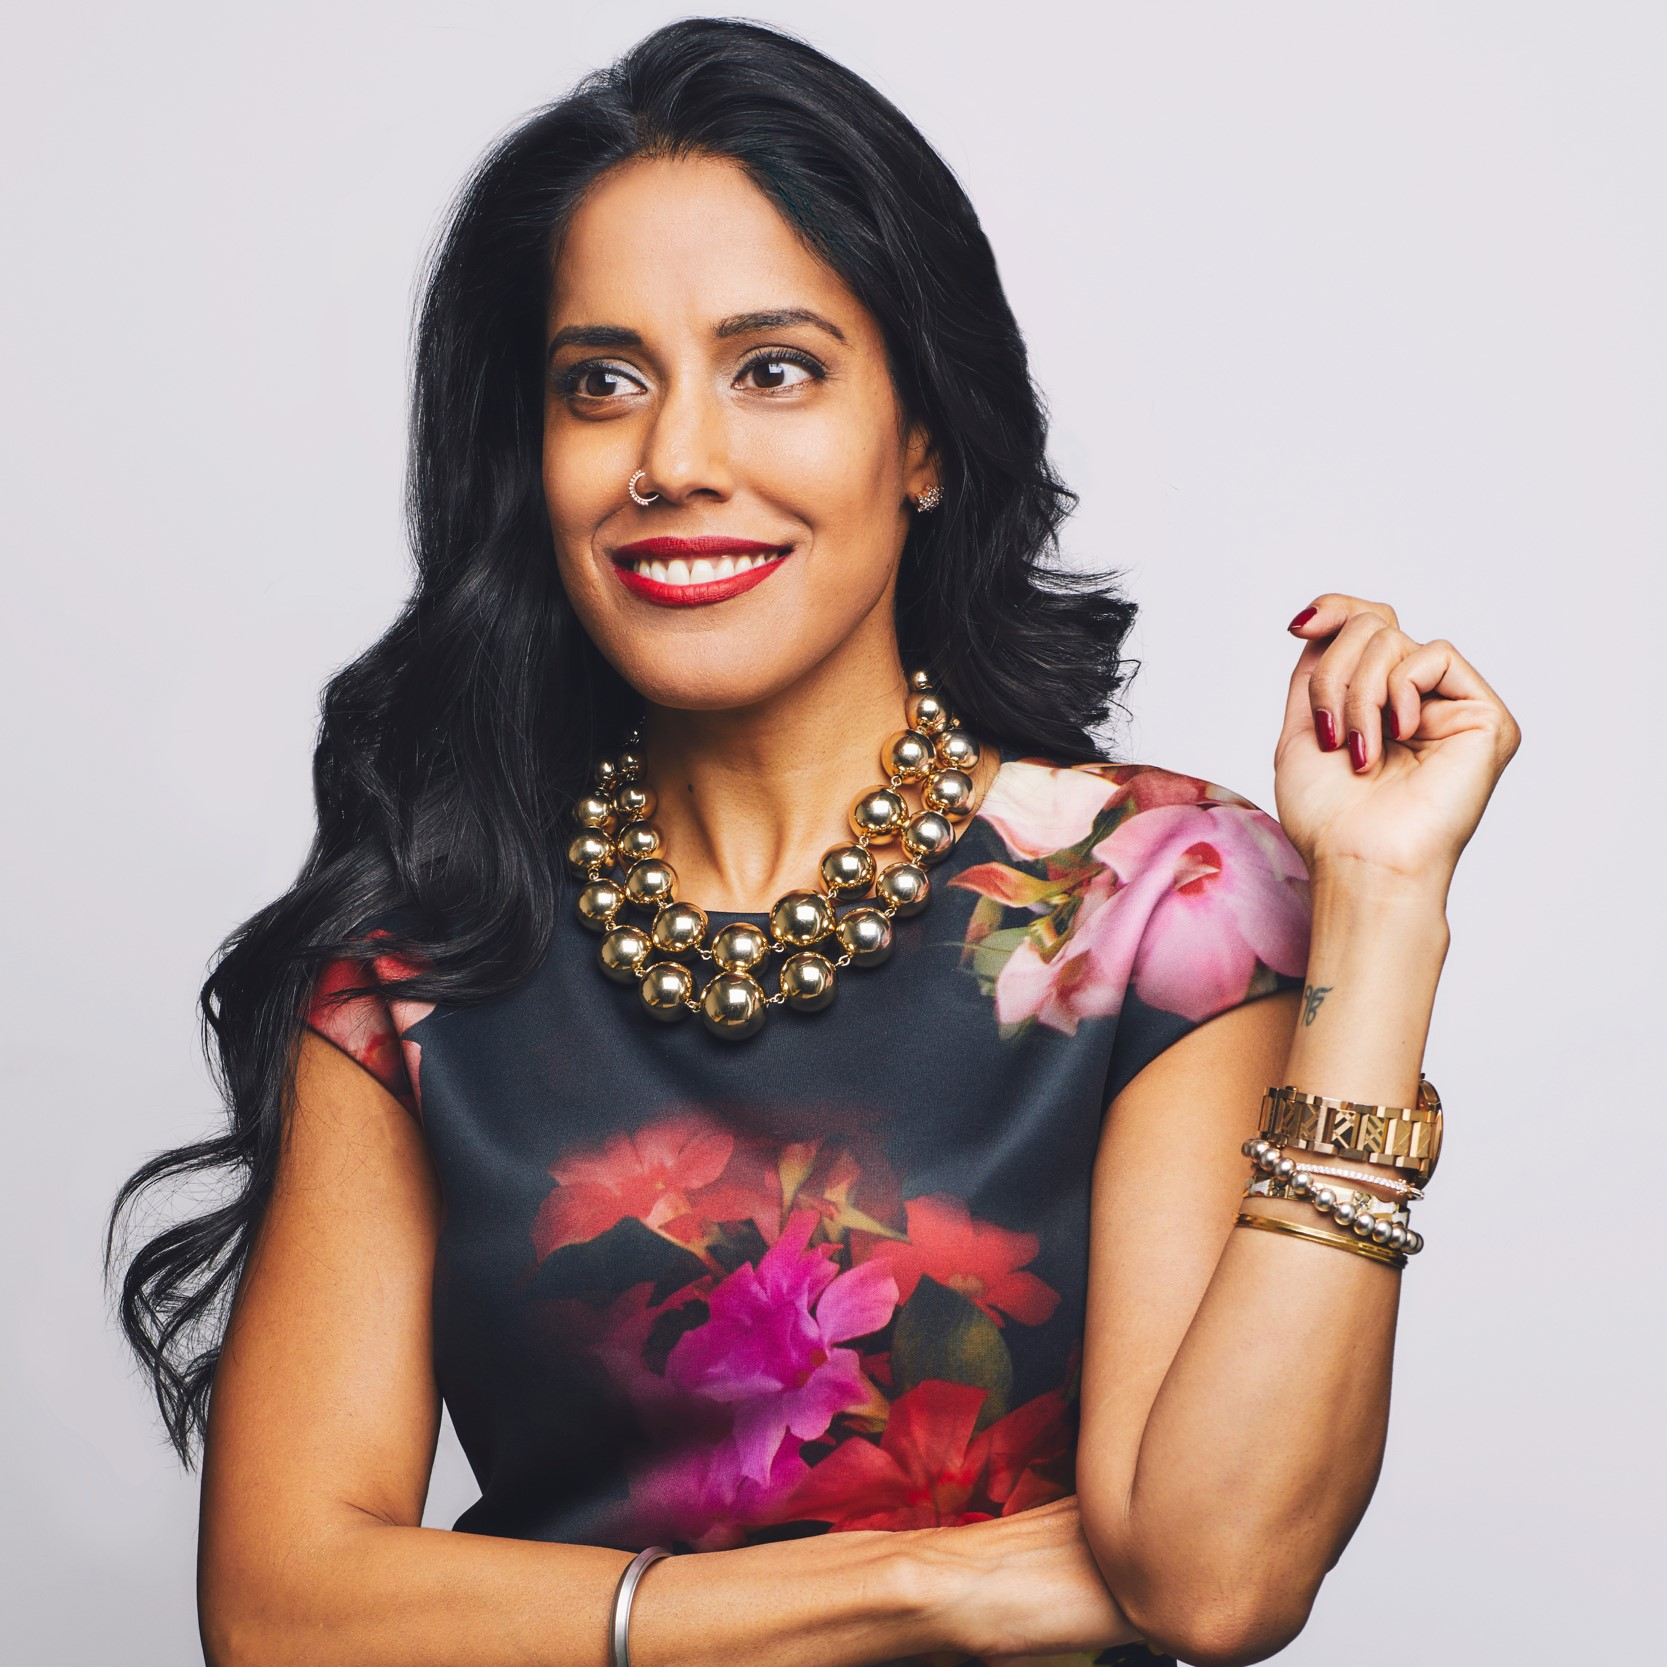 Headshot of Ritu Bhasin, a Punjabi Indian-Canadian woman with long, wavy black hair and a navy and pink floral dress